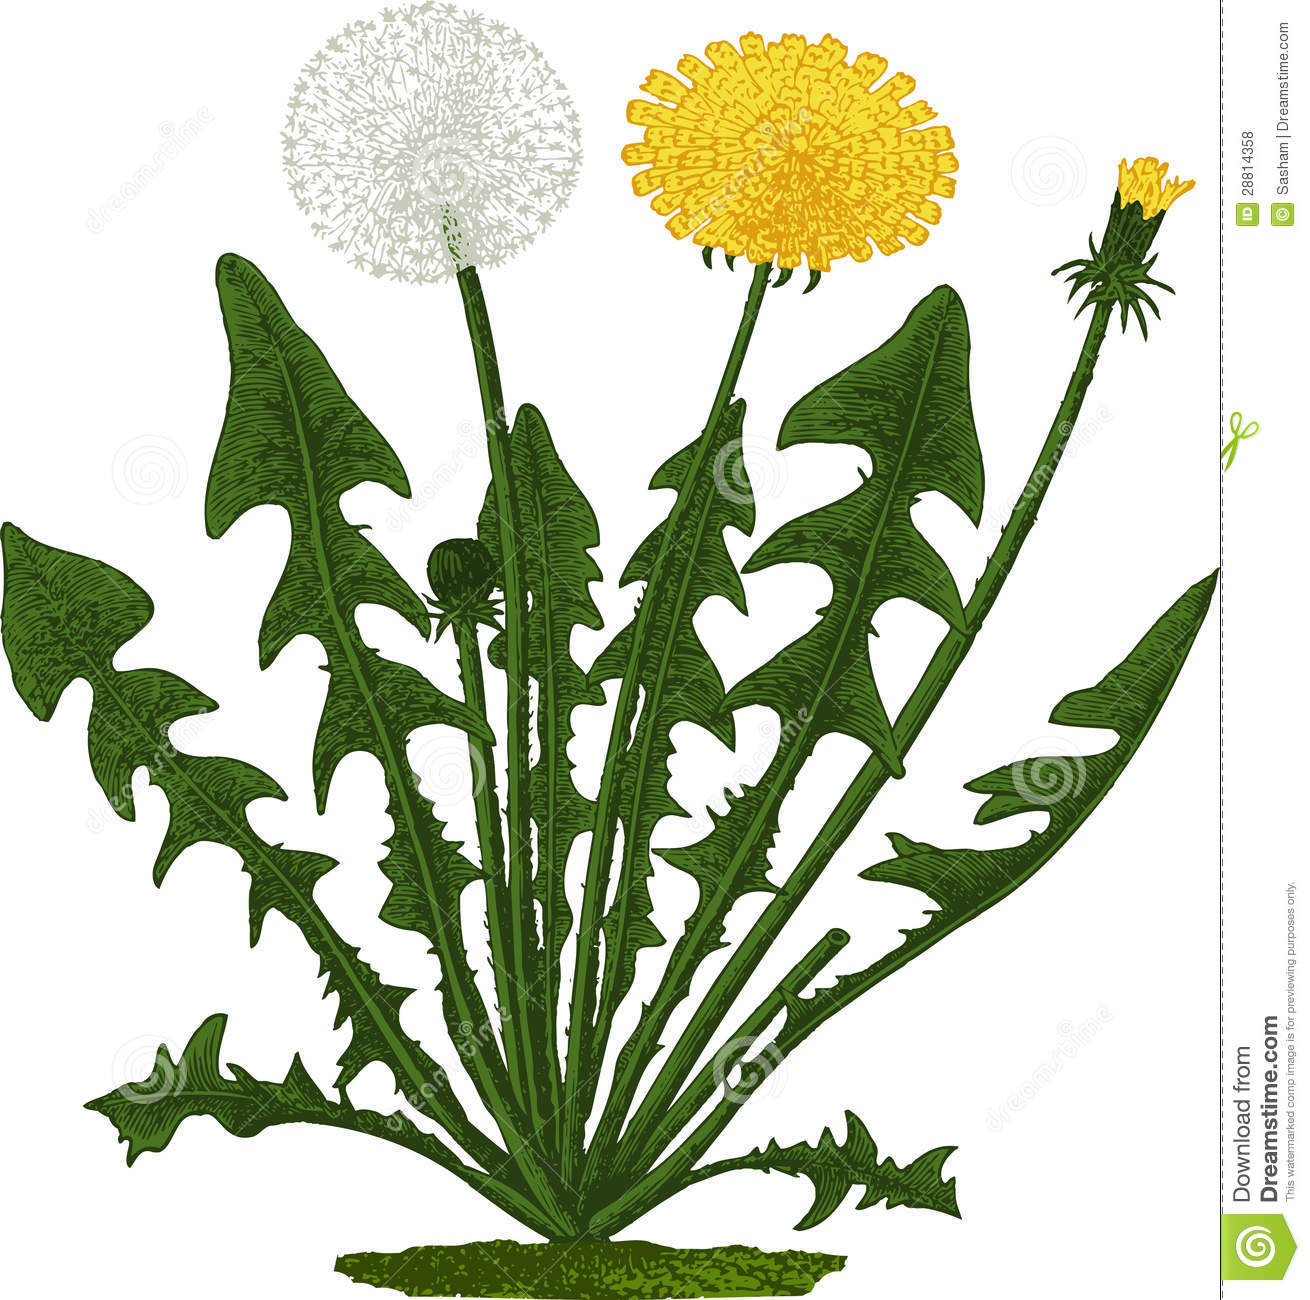 Camellia Illustration Dandelion Flower. Vect...